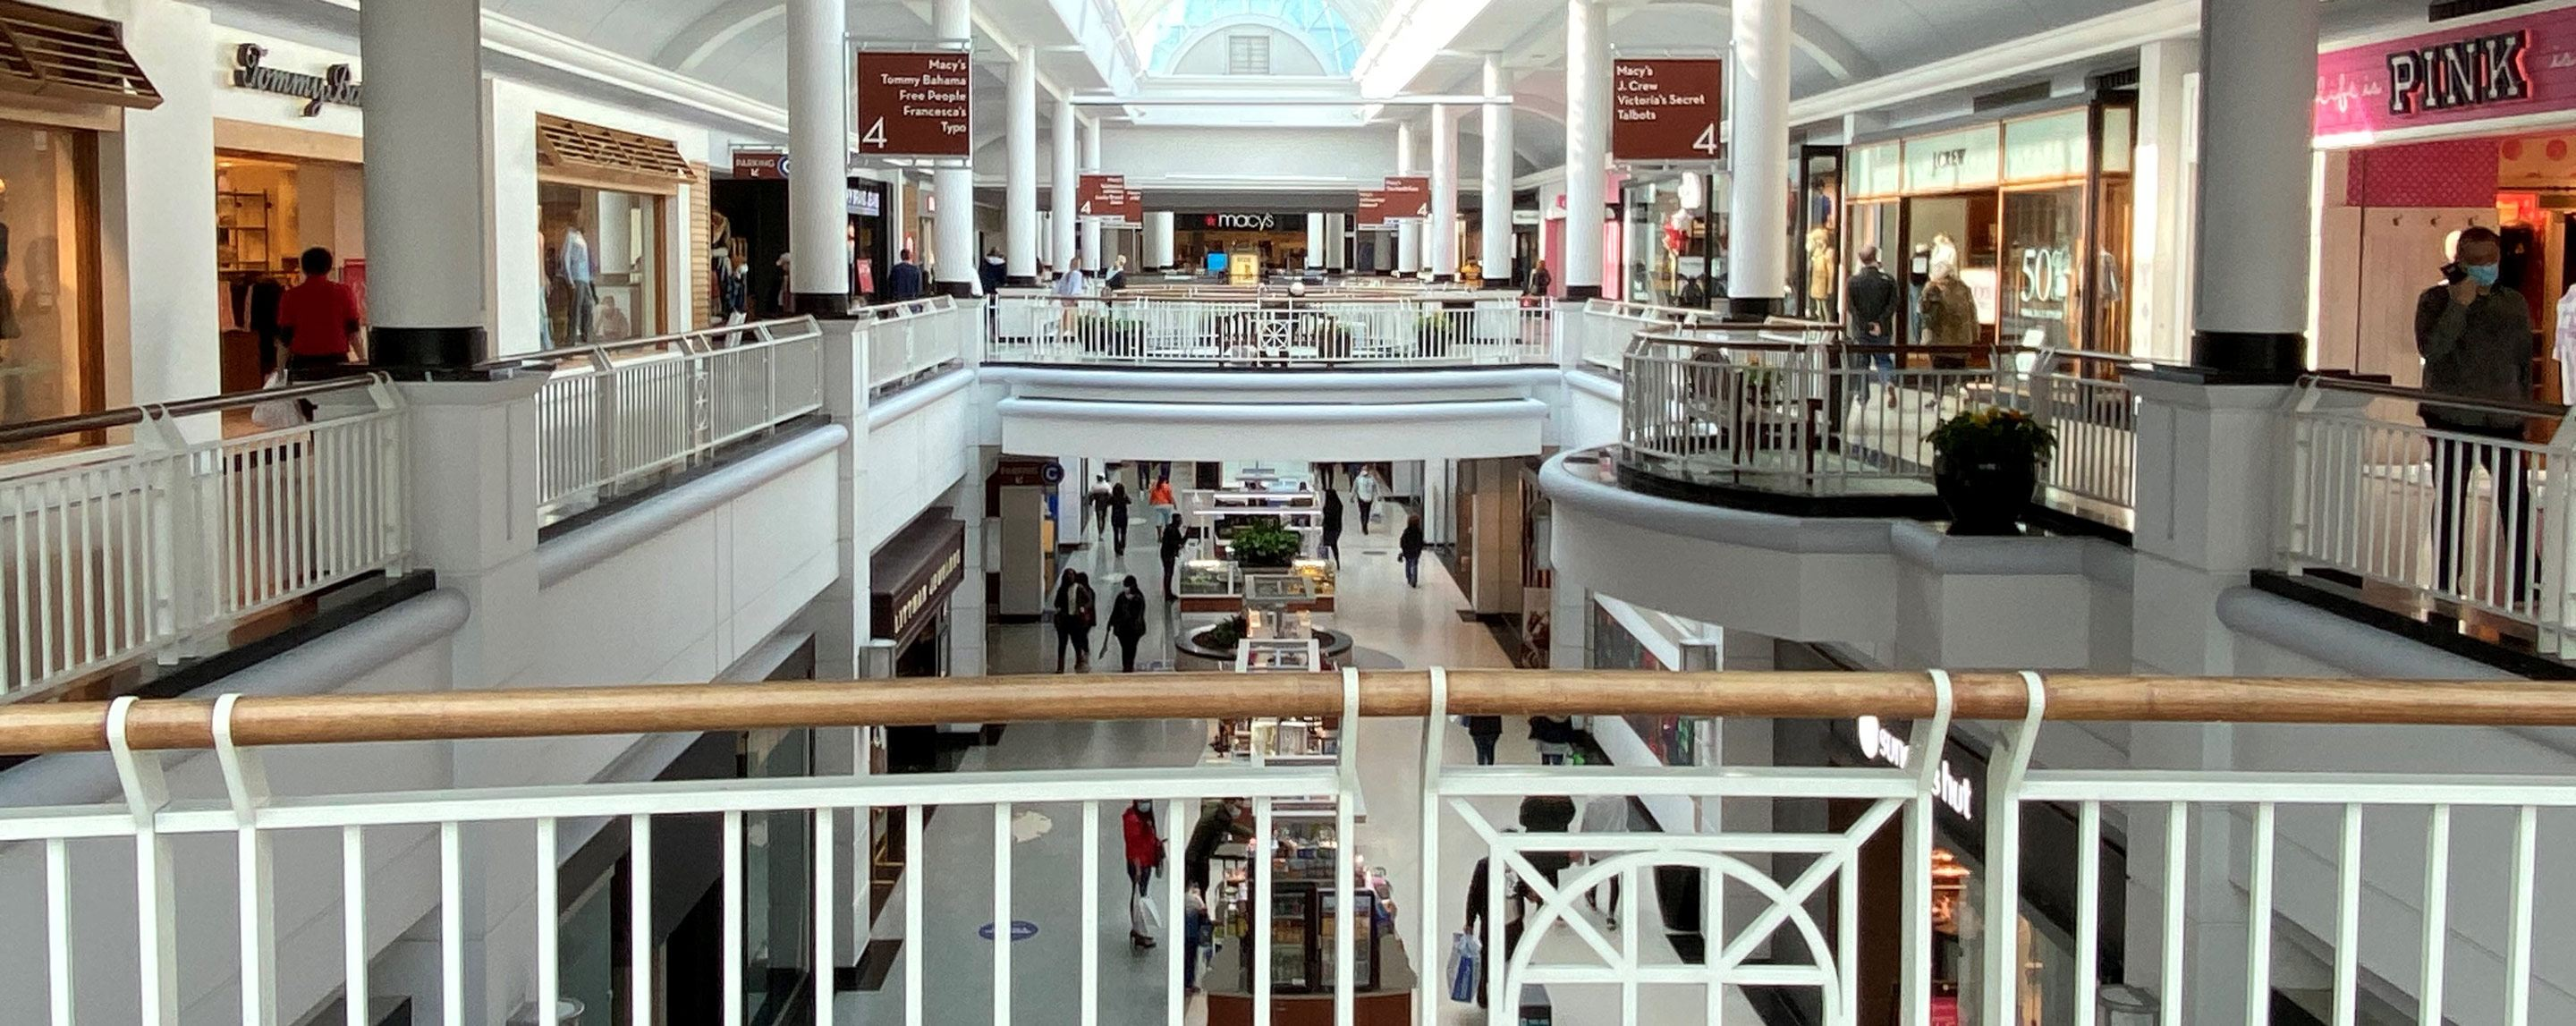 Overlooking the balcony on the second floor of an indoor mall near PINK, Tommy Bahama, and in the Macy's wing.